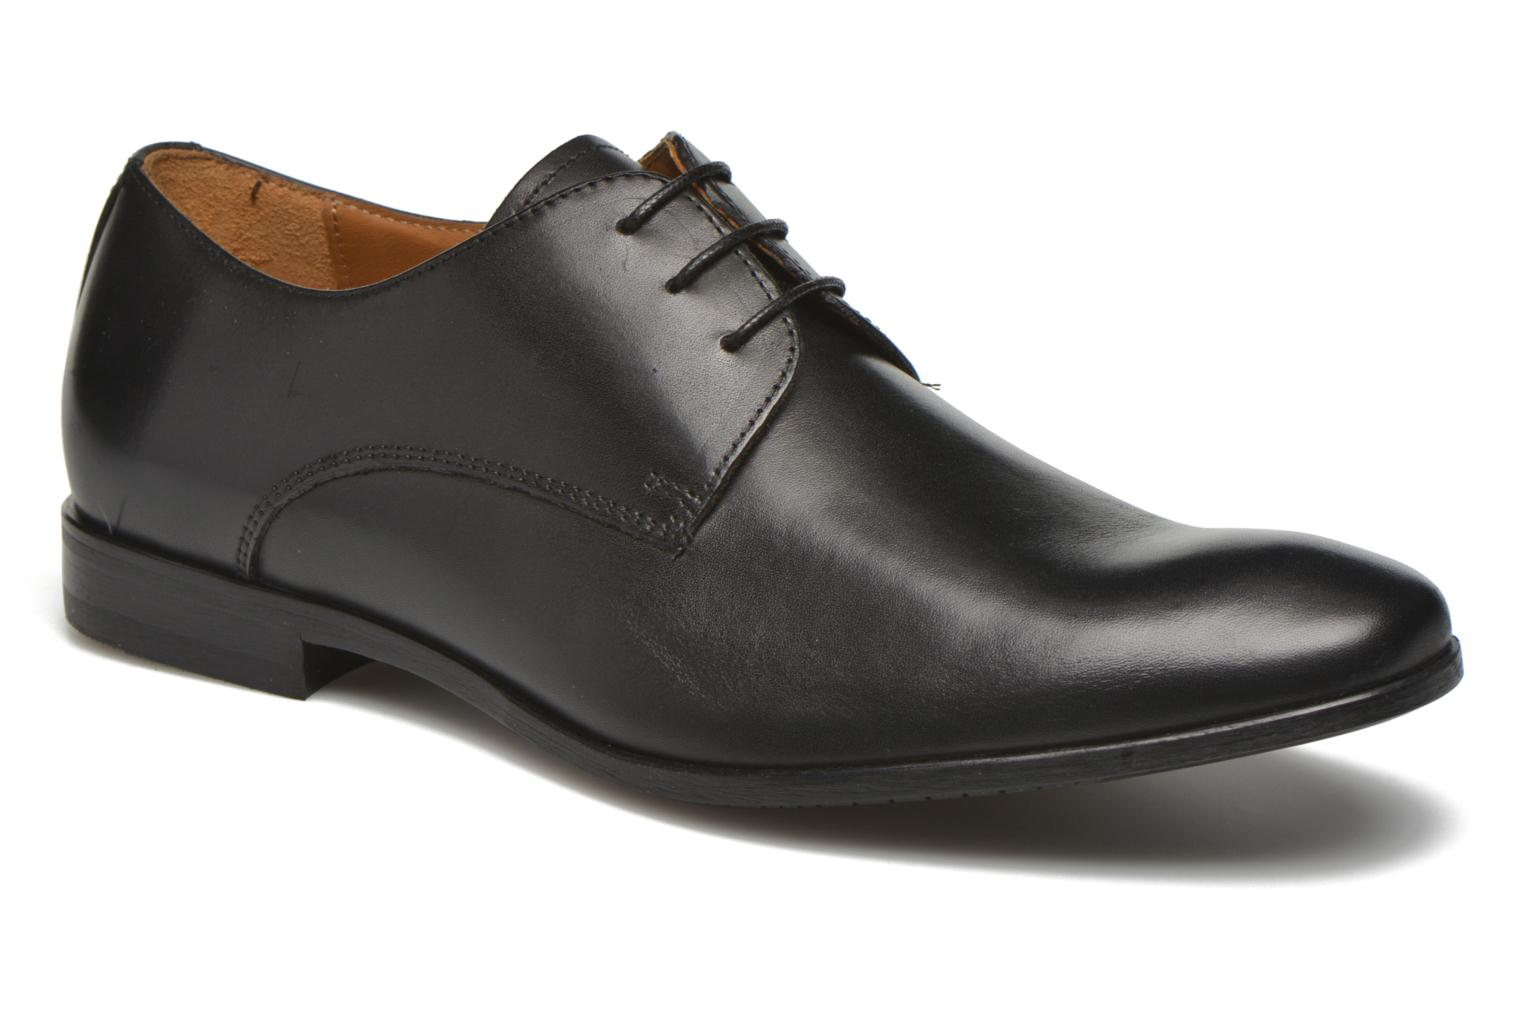 Marques Chaussure homme Marvin&Co homme Nailsworth River Marrone